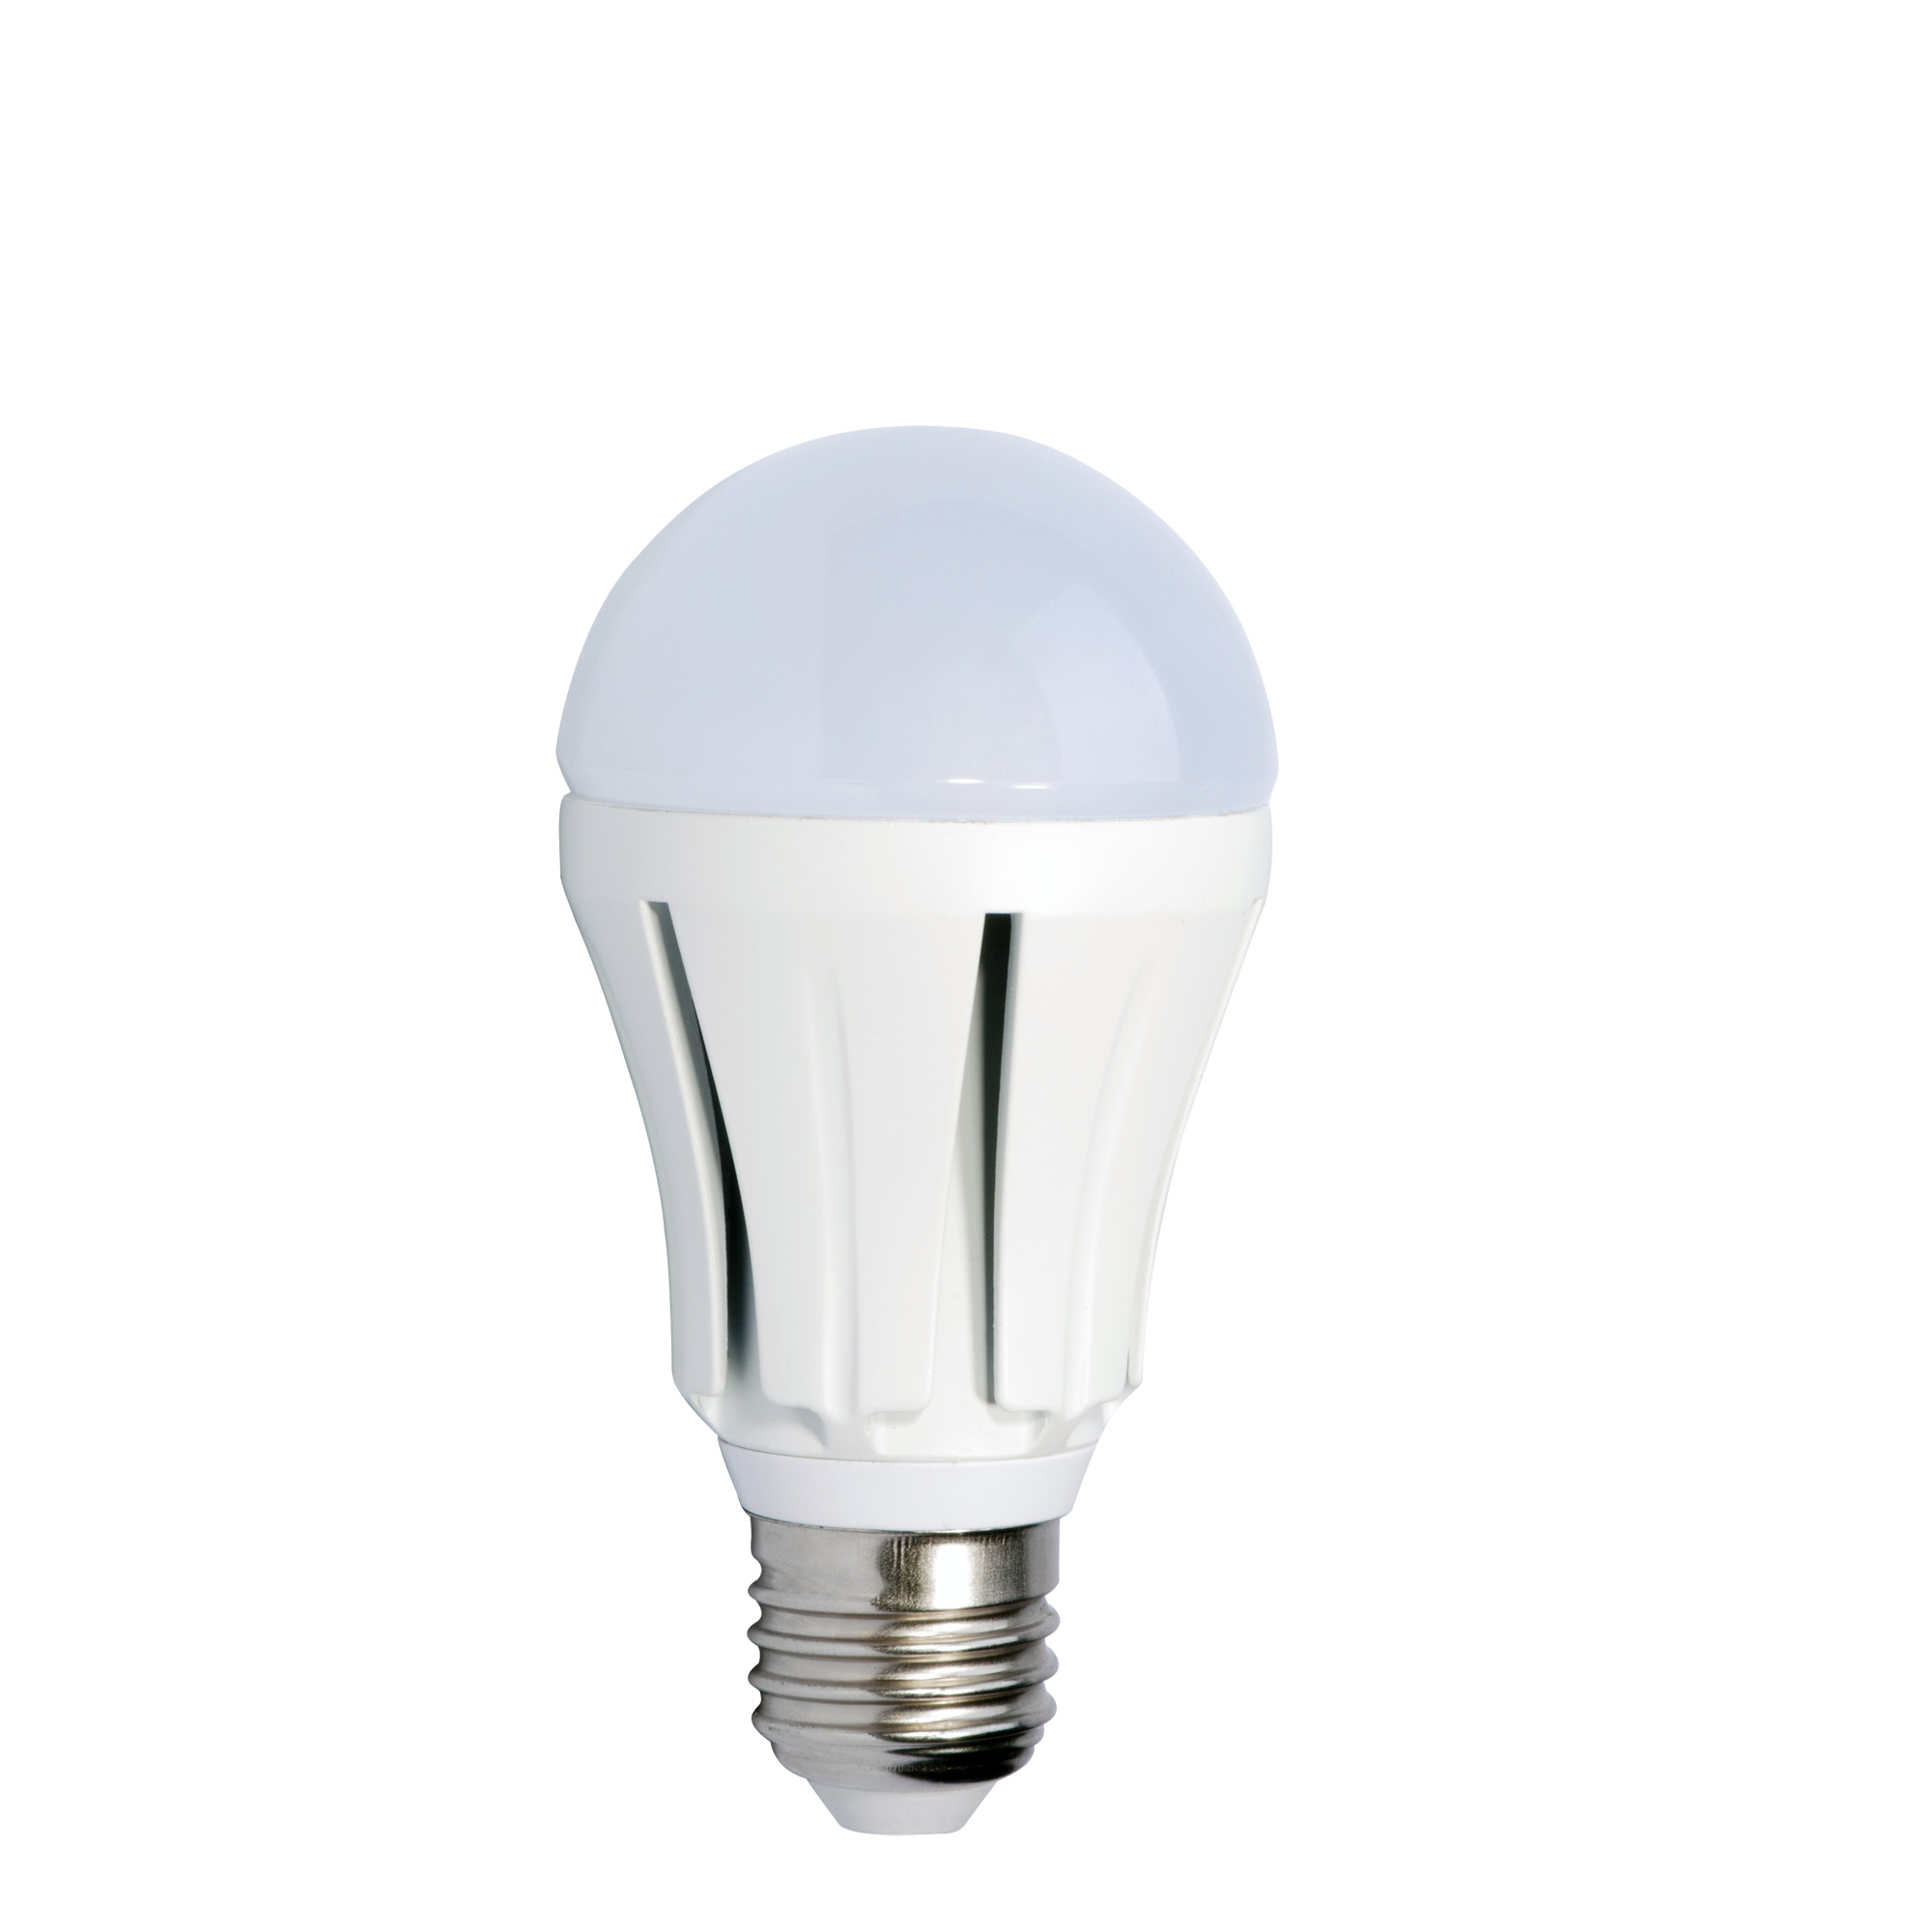 9W Led Bulb light White Aluminum baking finish CE Rohs